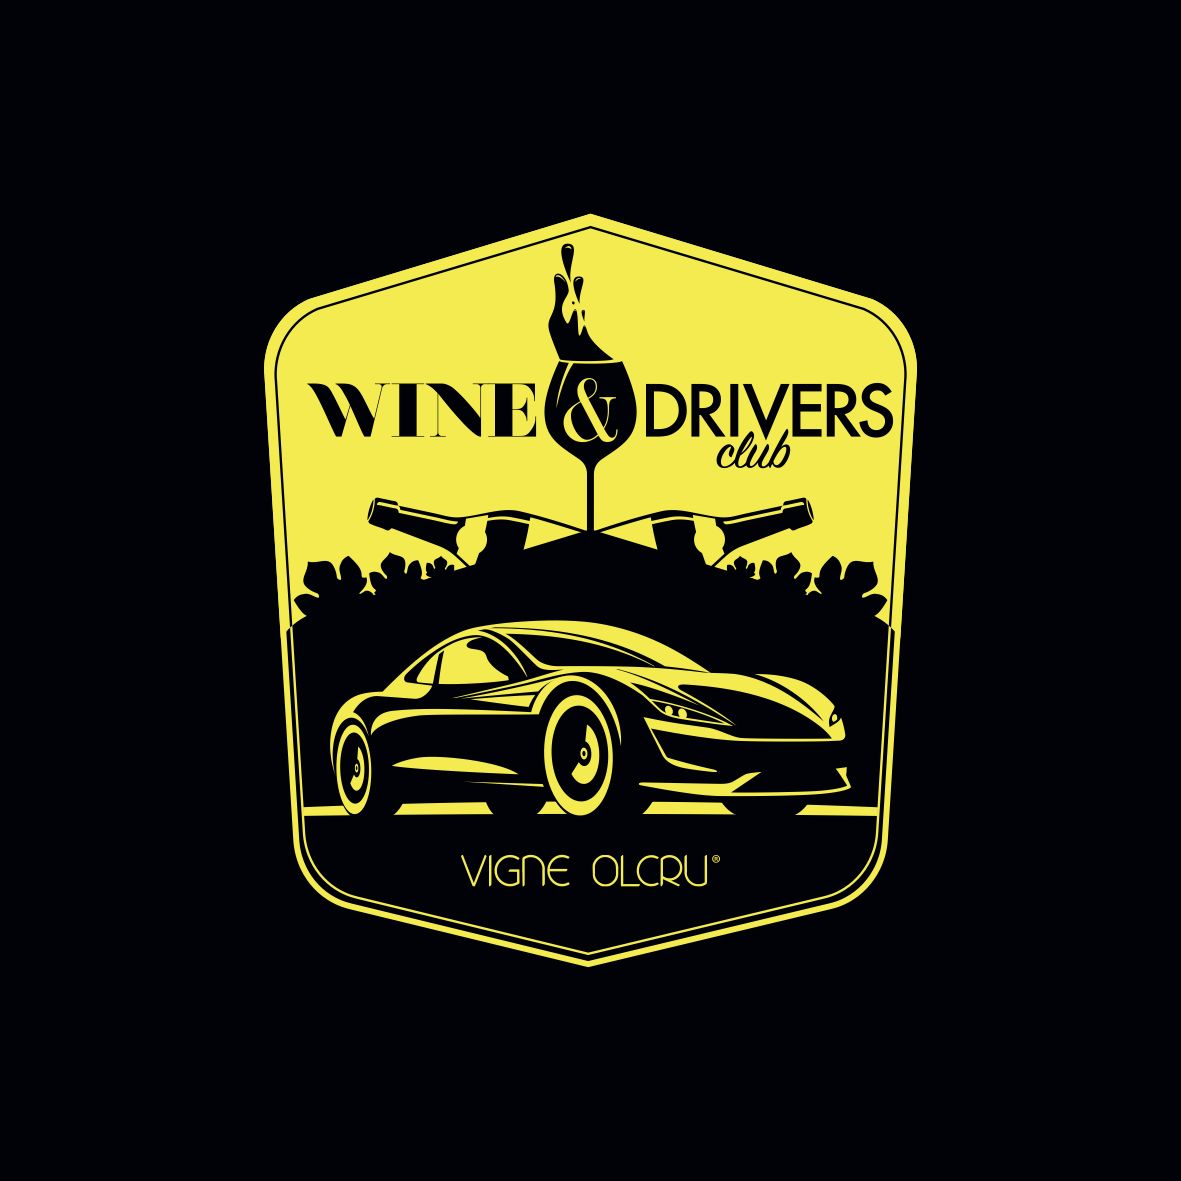 Wine & Drivers Club